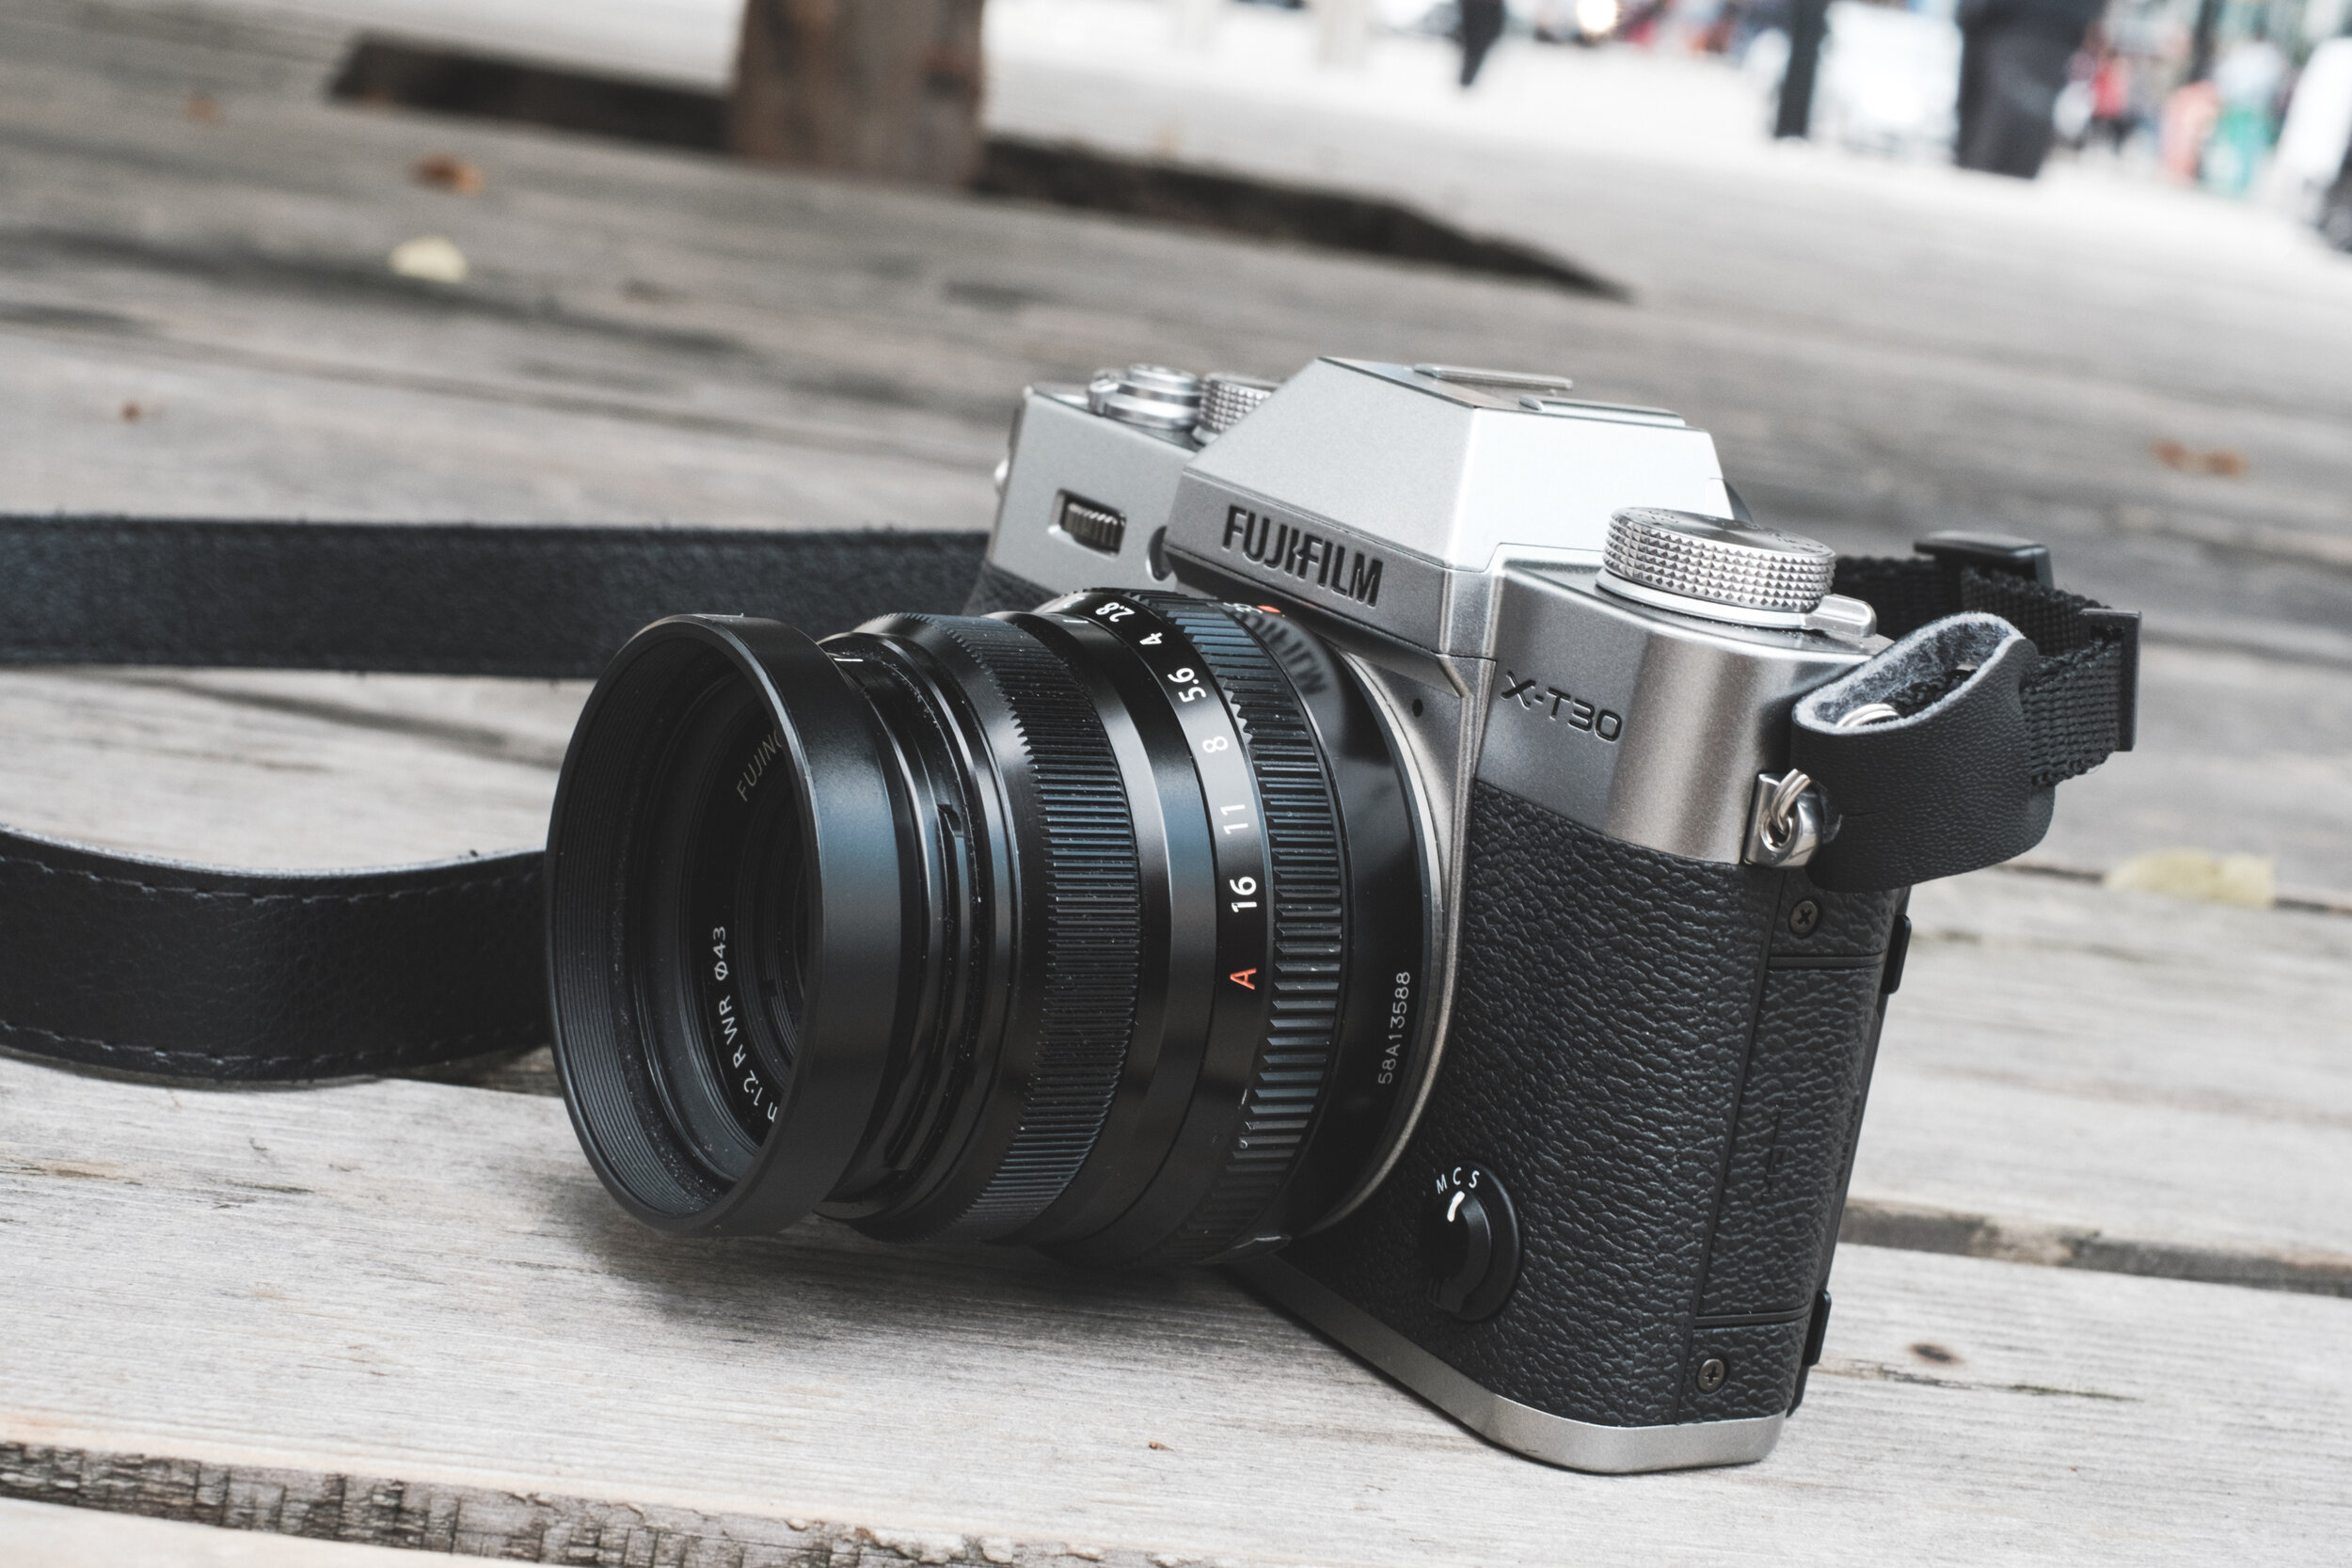 The Fujifilm X-T30 with an XF 35mm f/2 R WR